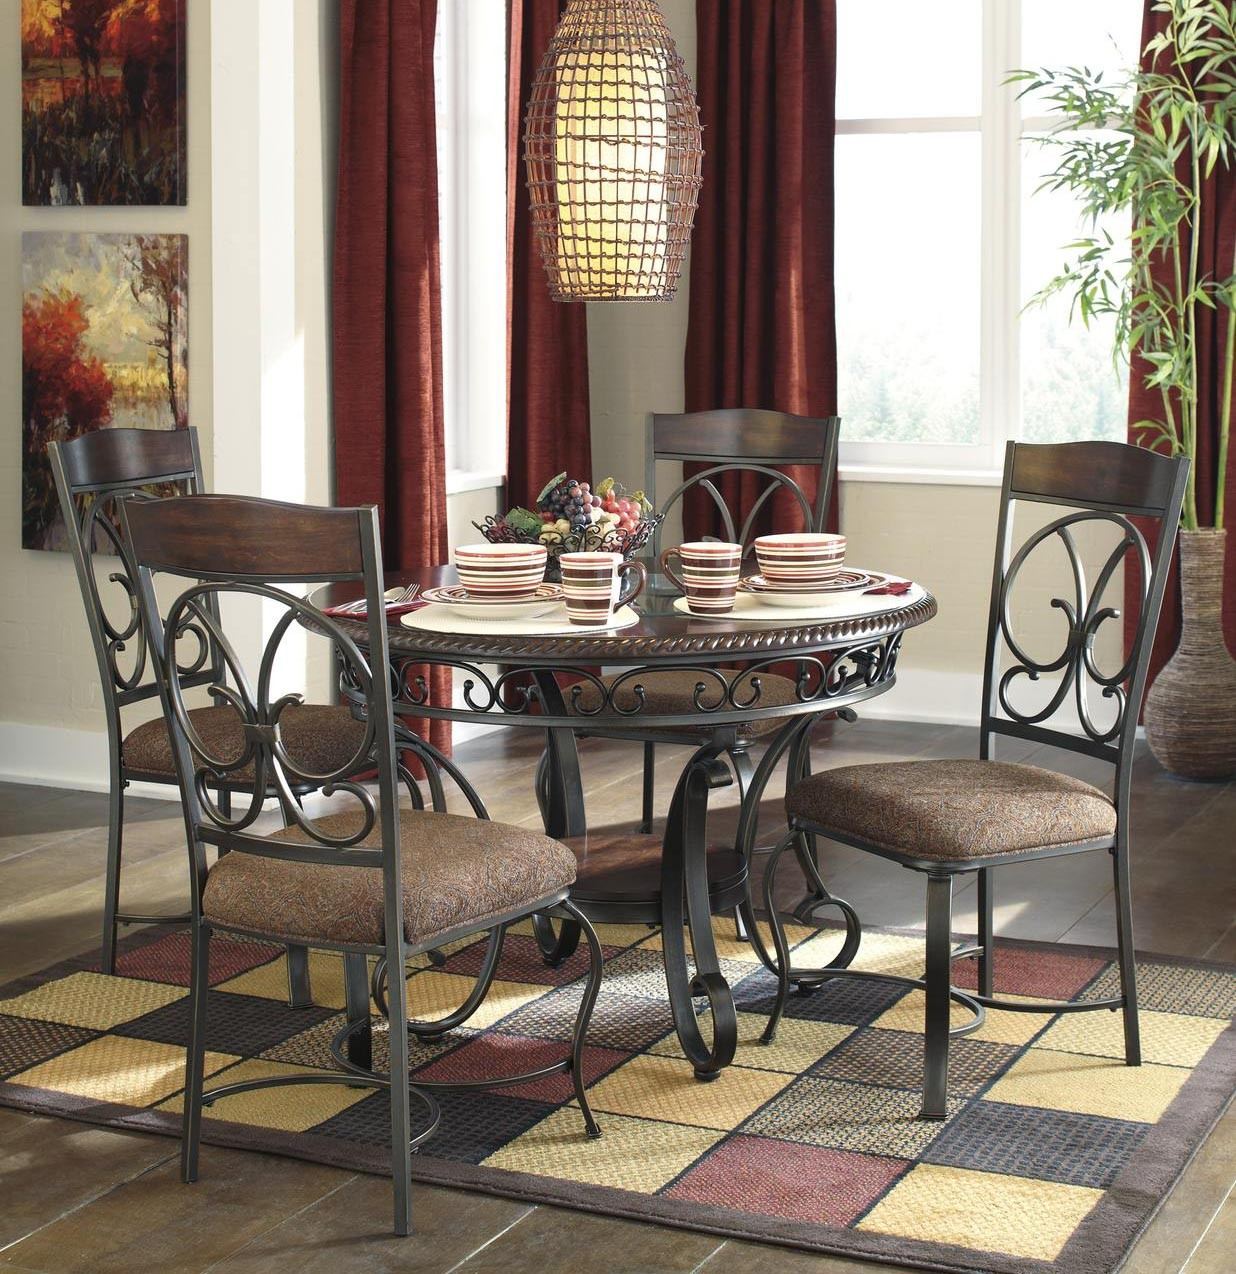 Ashley Furniture Dinette Set: Signature Design By Ashley Glambrey Brown 5 Piece Dining